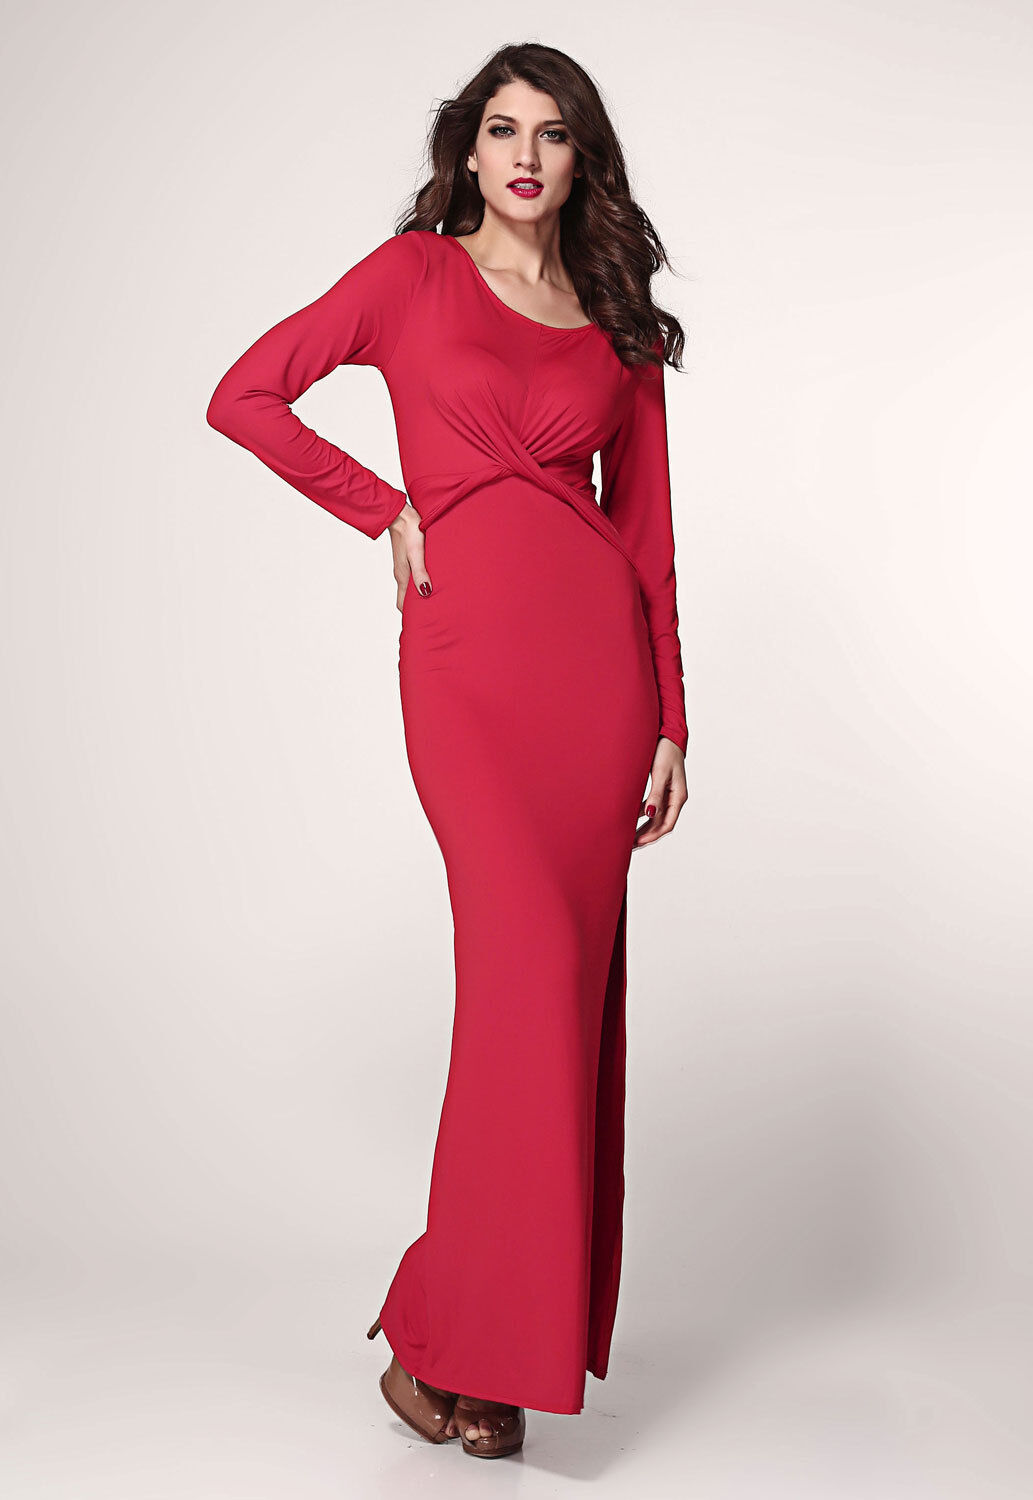 rot Maxi Dress Long Sleeve Twist Detail Slit Christmas Club Wear Cocktail 6180